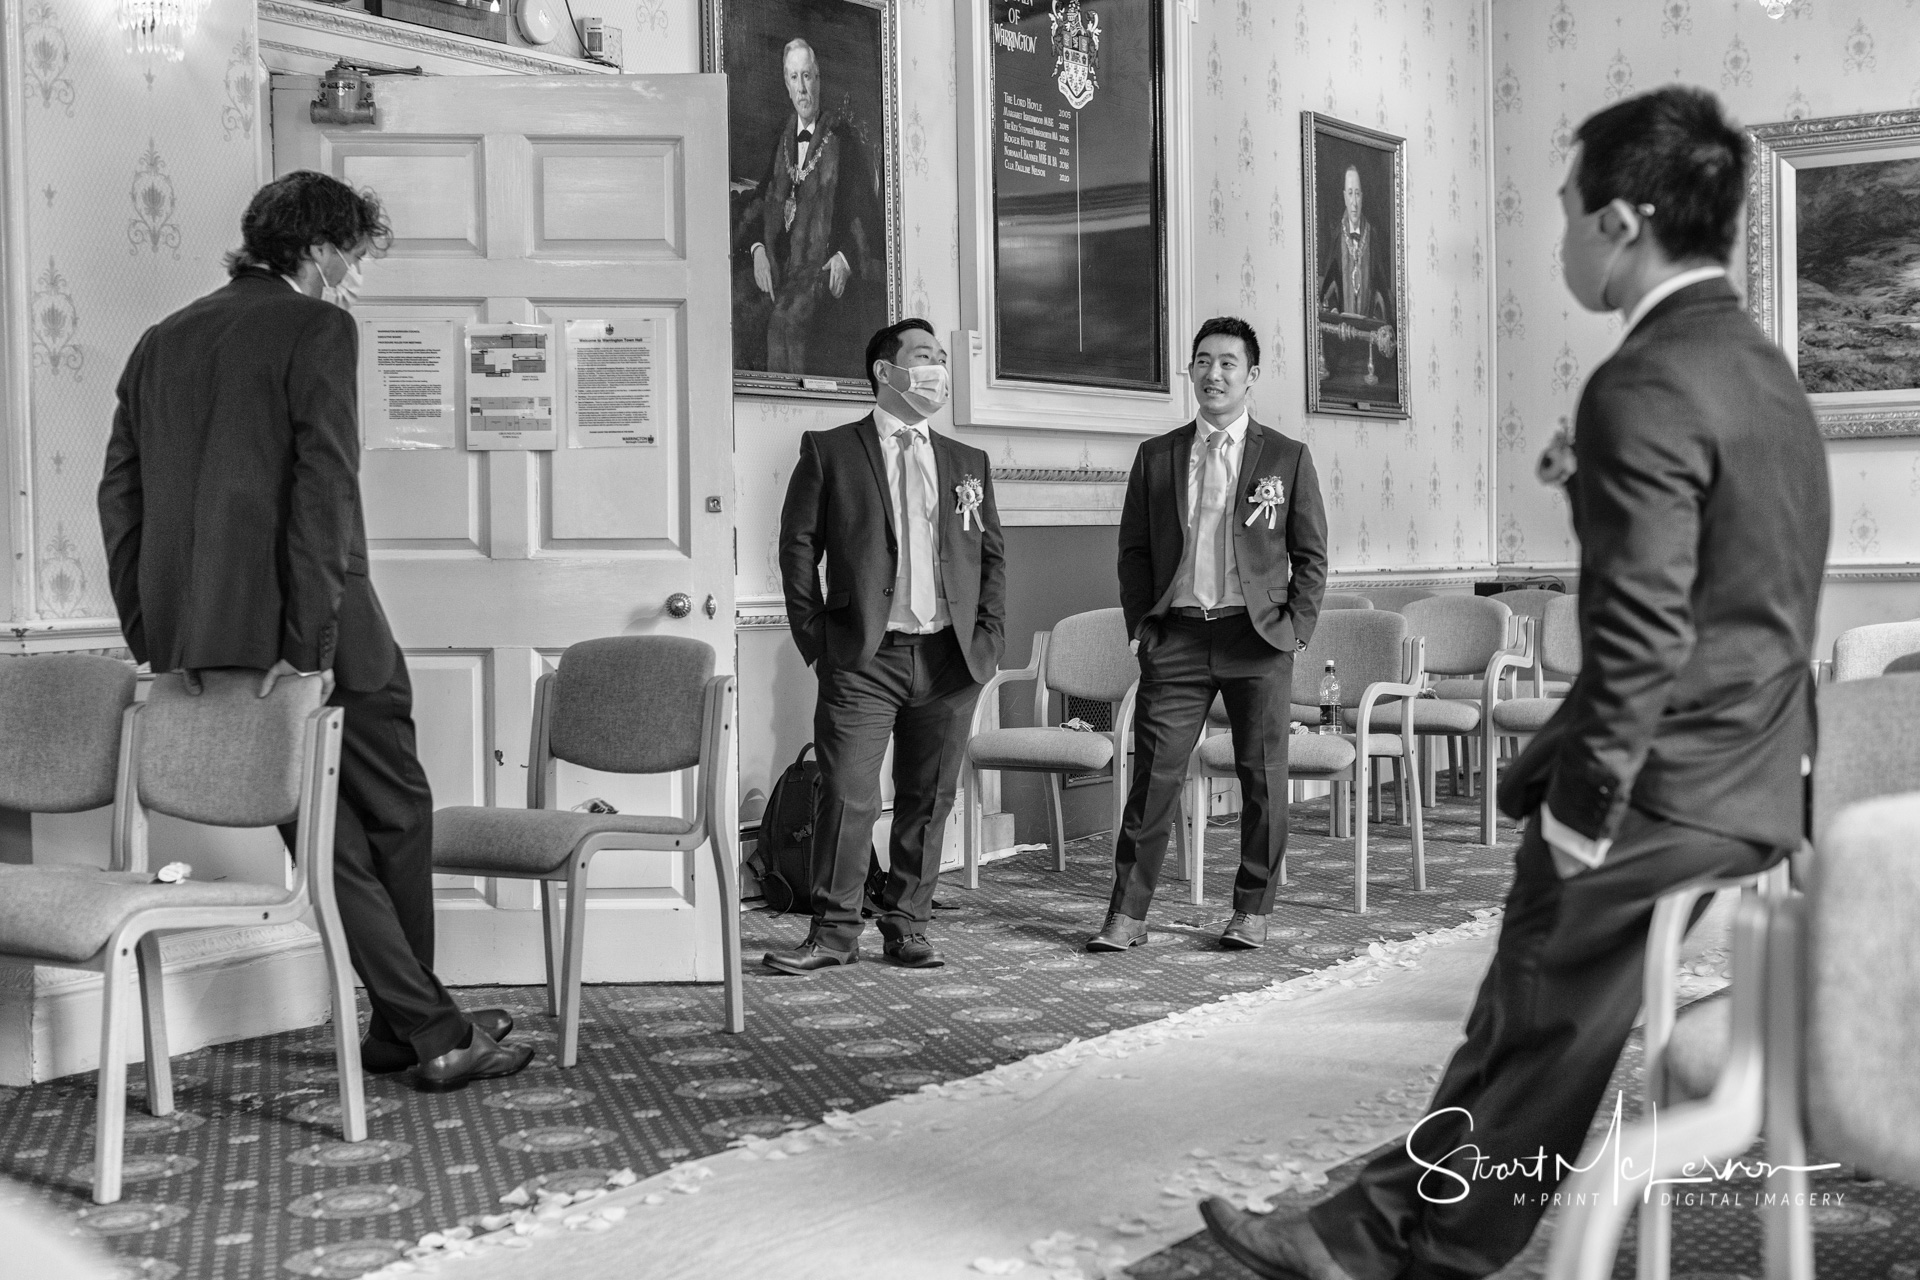 The groom and his groomsmen are socially distanced before the wedding ceremony at Warrington Town Hall